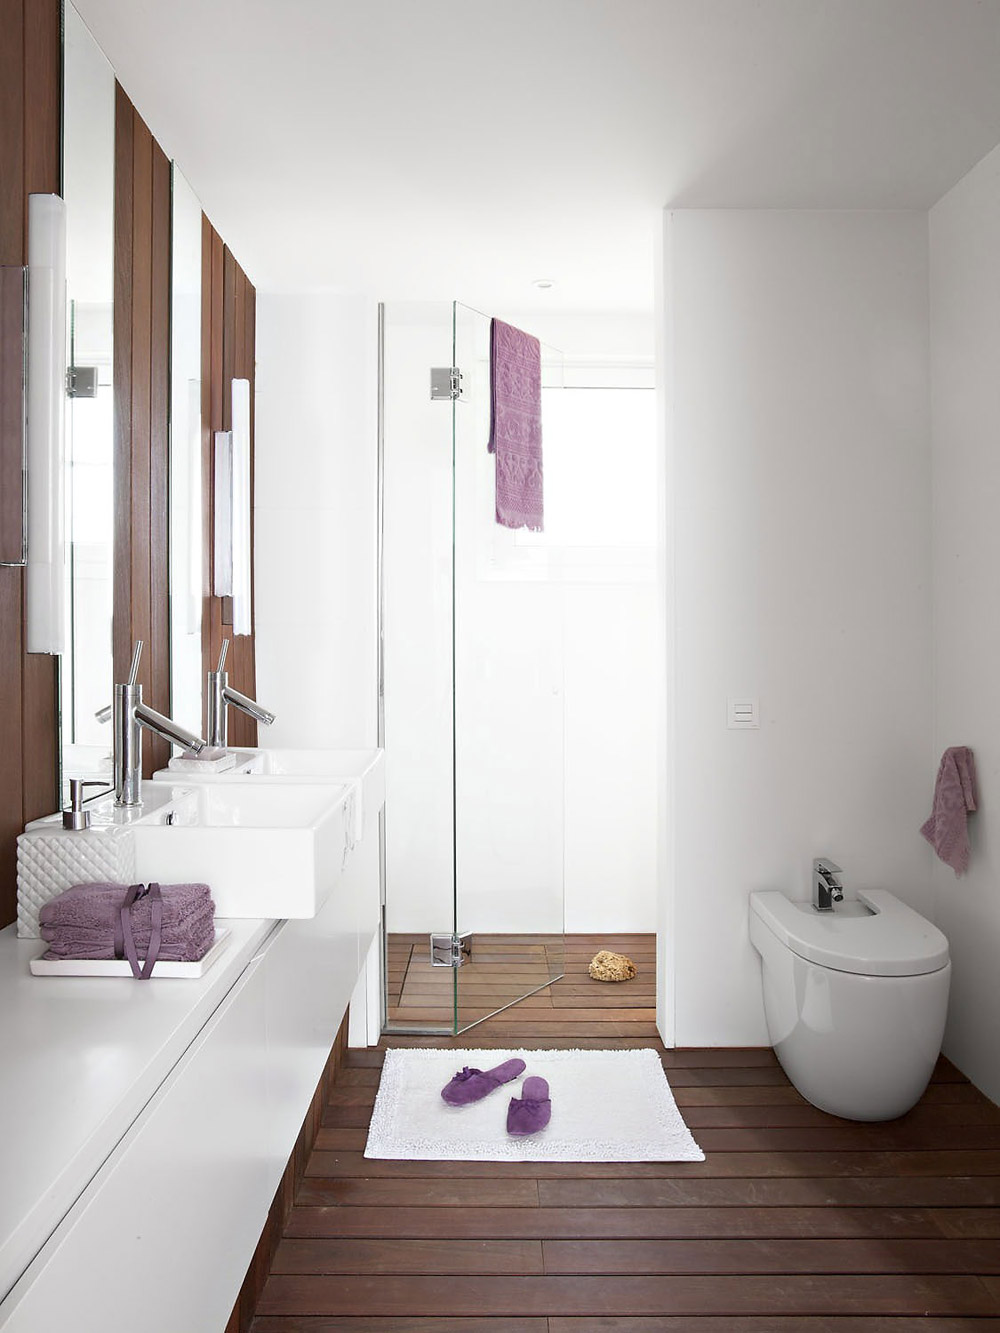 Bathroom, Vivienda en Llaveneres by Susanna Cots